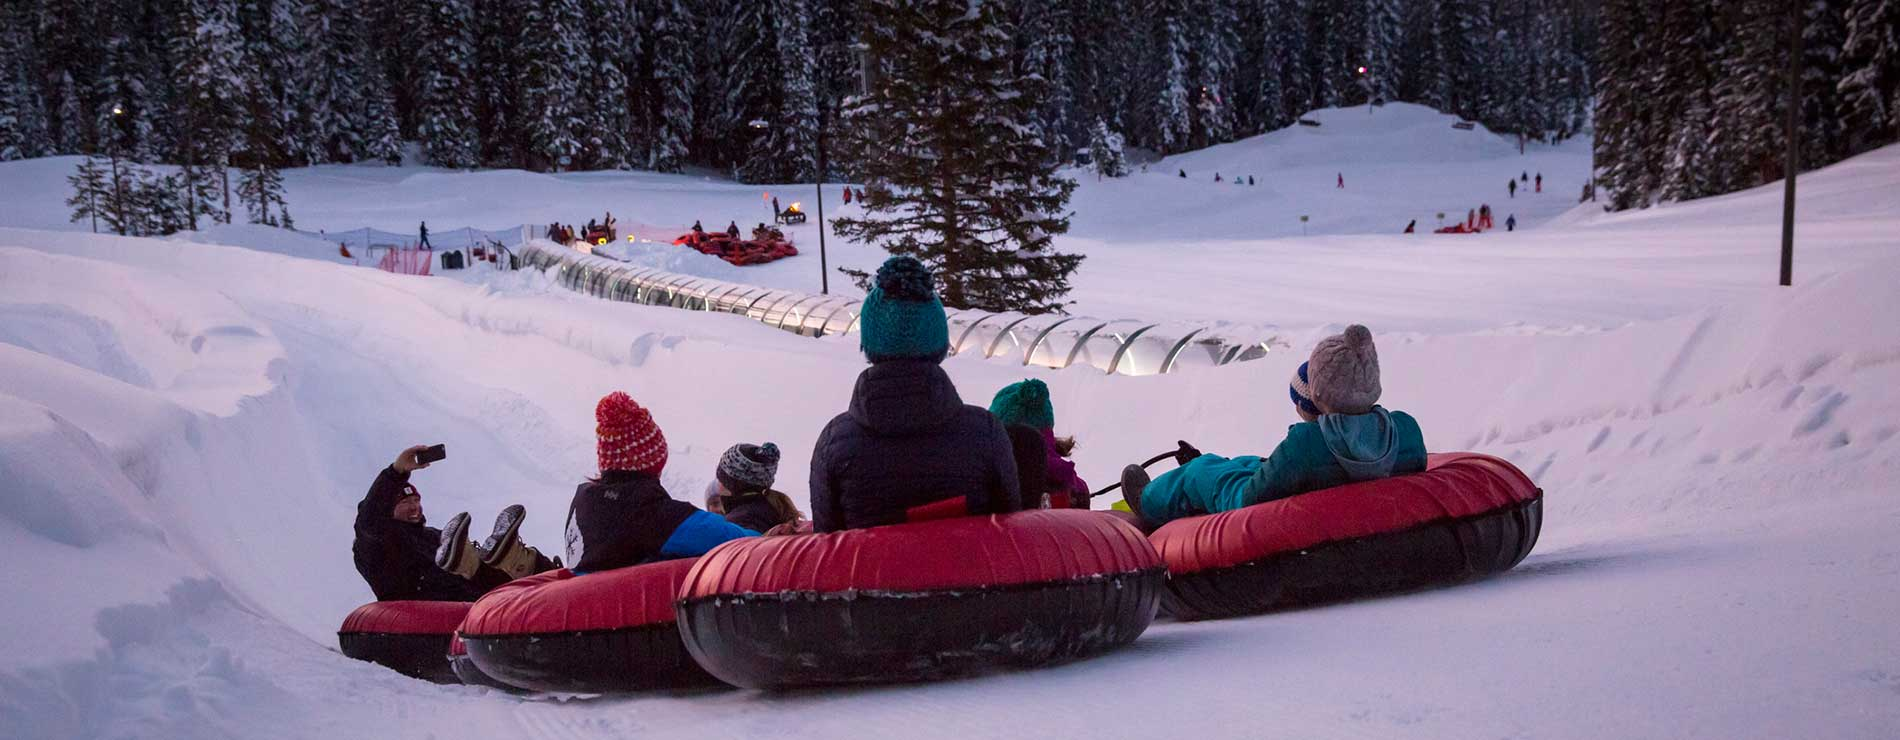 2016_Winter_Activities_Tubing_SH.jpg